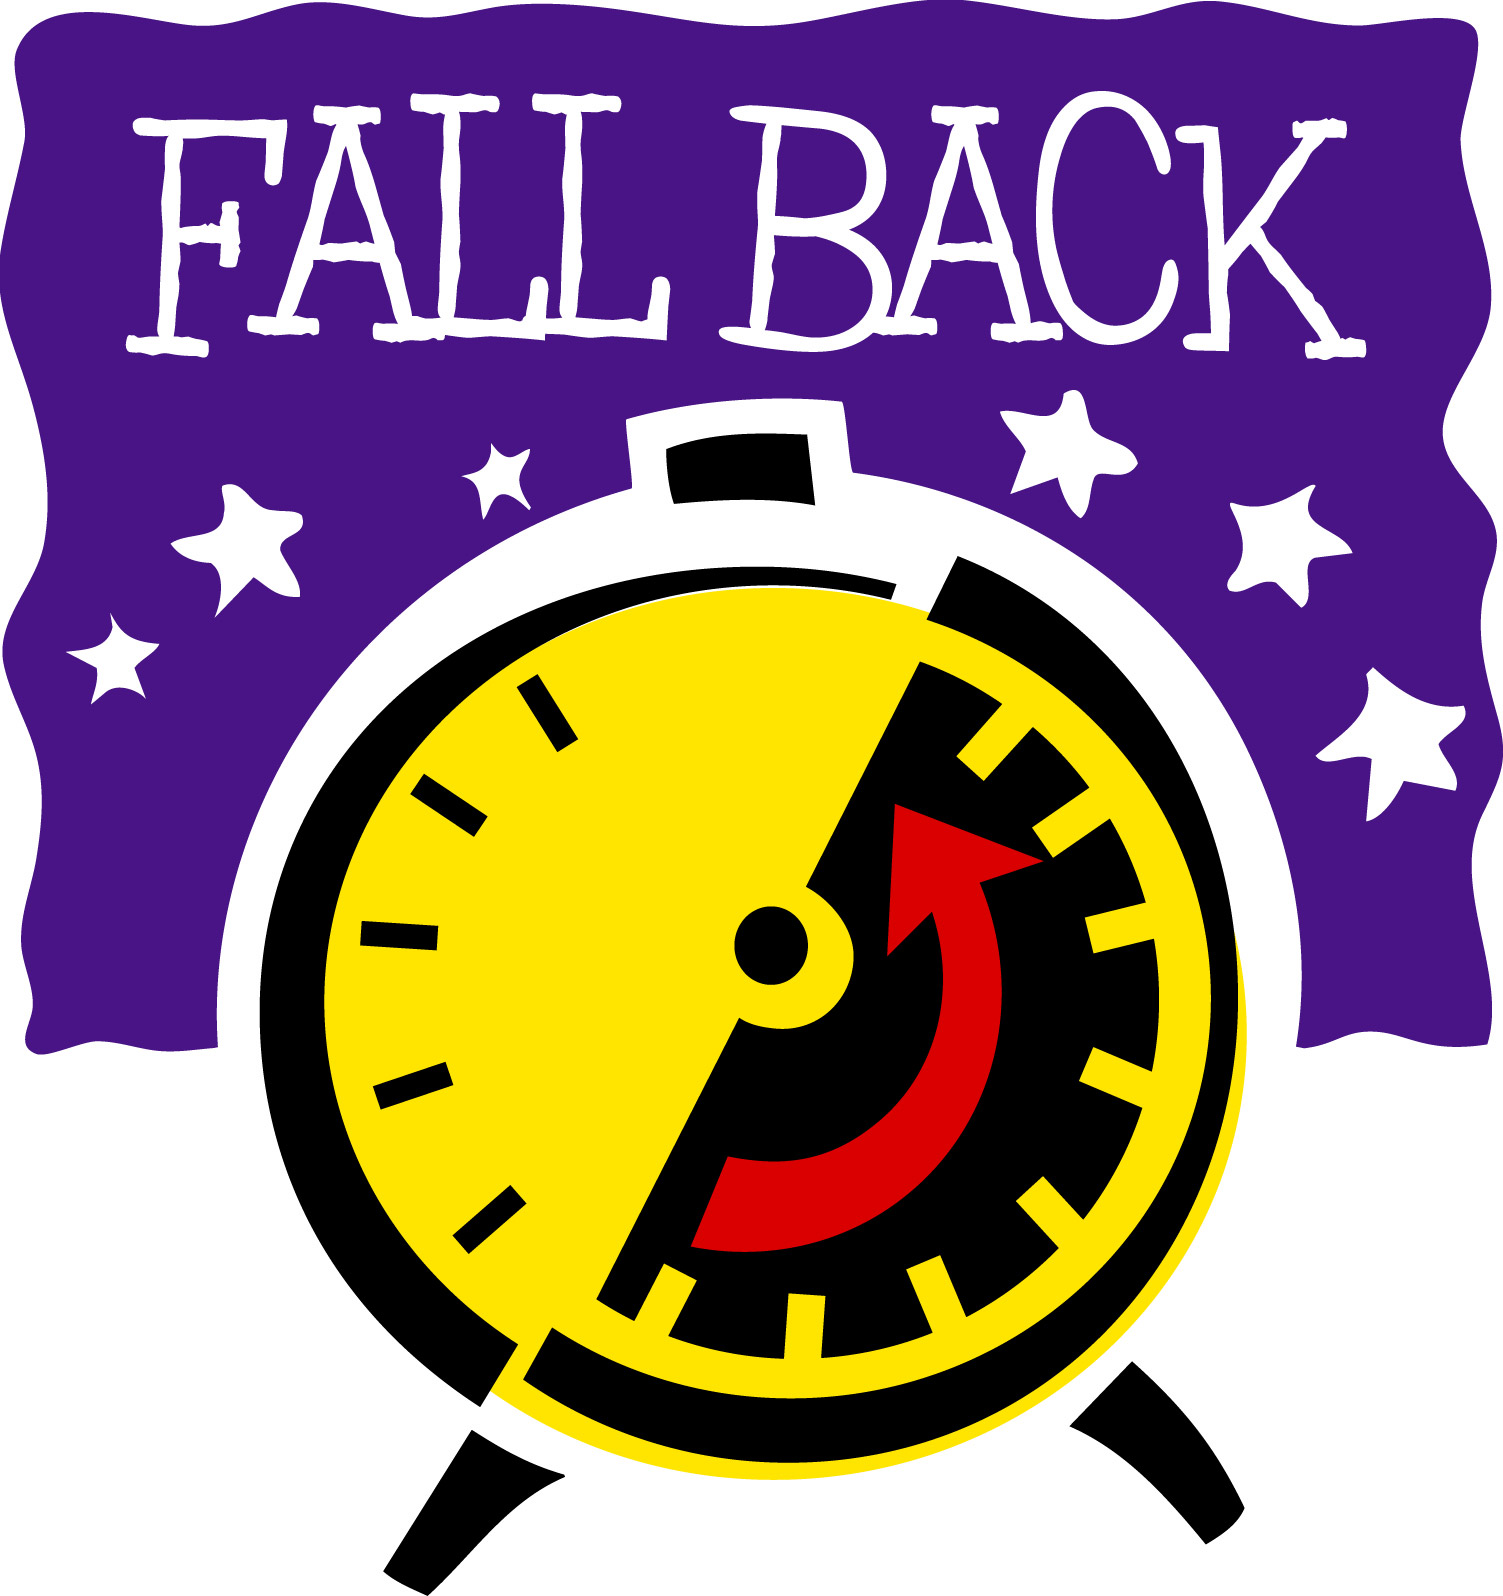 Daylight savings time begins clipart png free download Free Daylight Cliparts, Download Free Clip Art, Free Clip Art on ... png free download